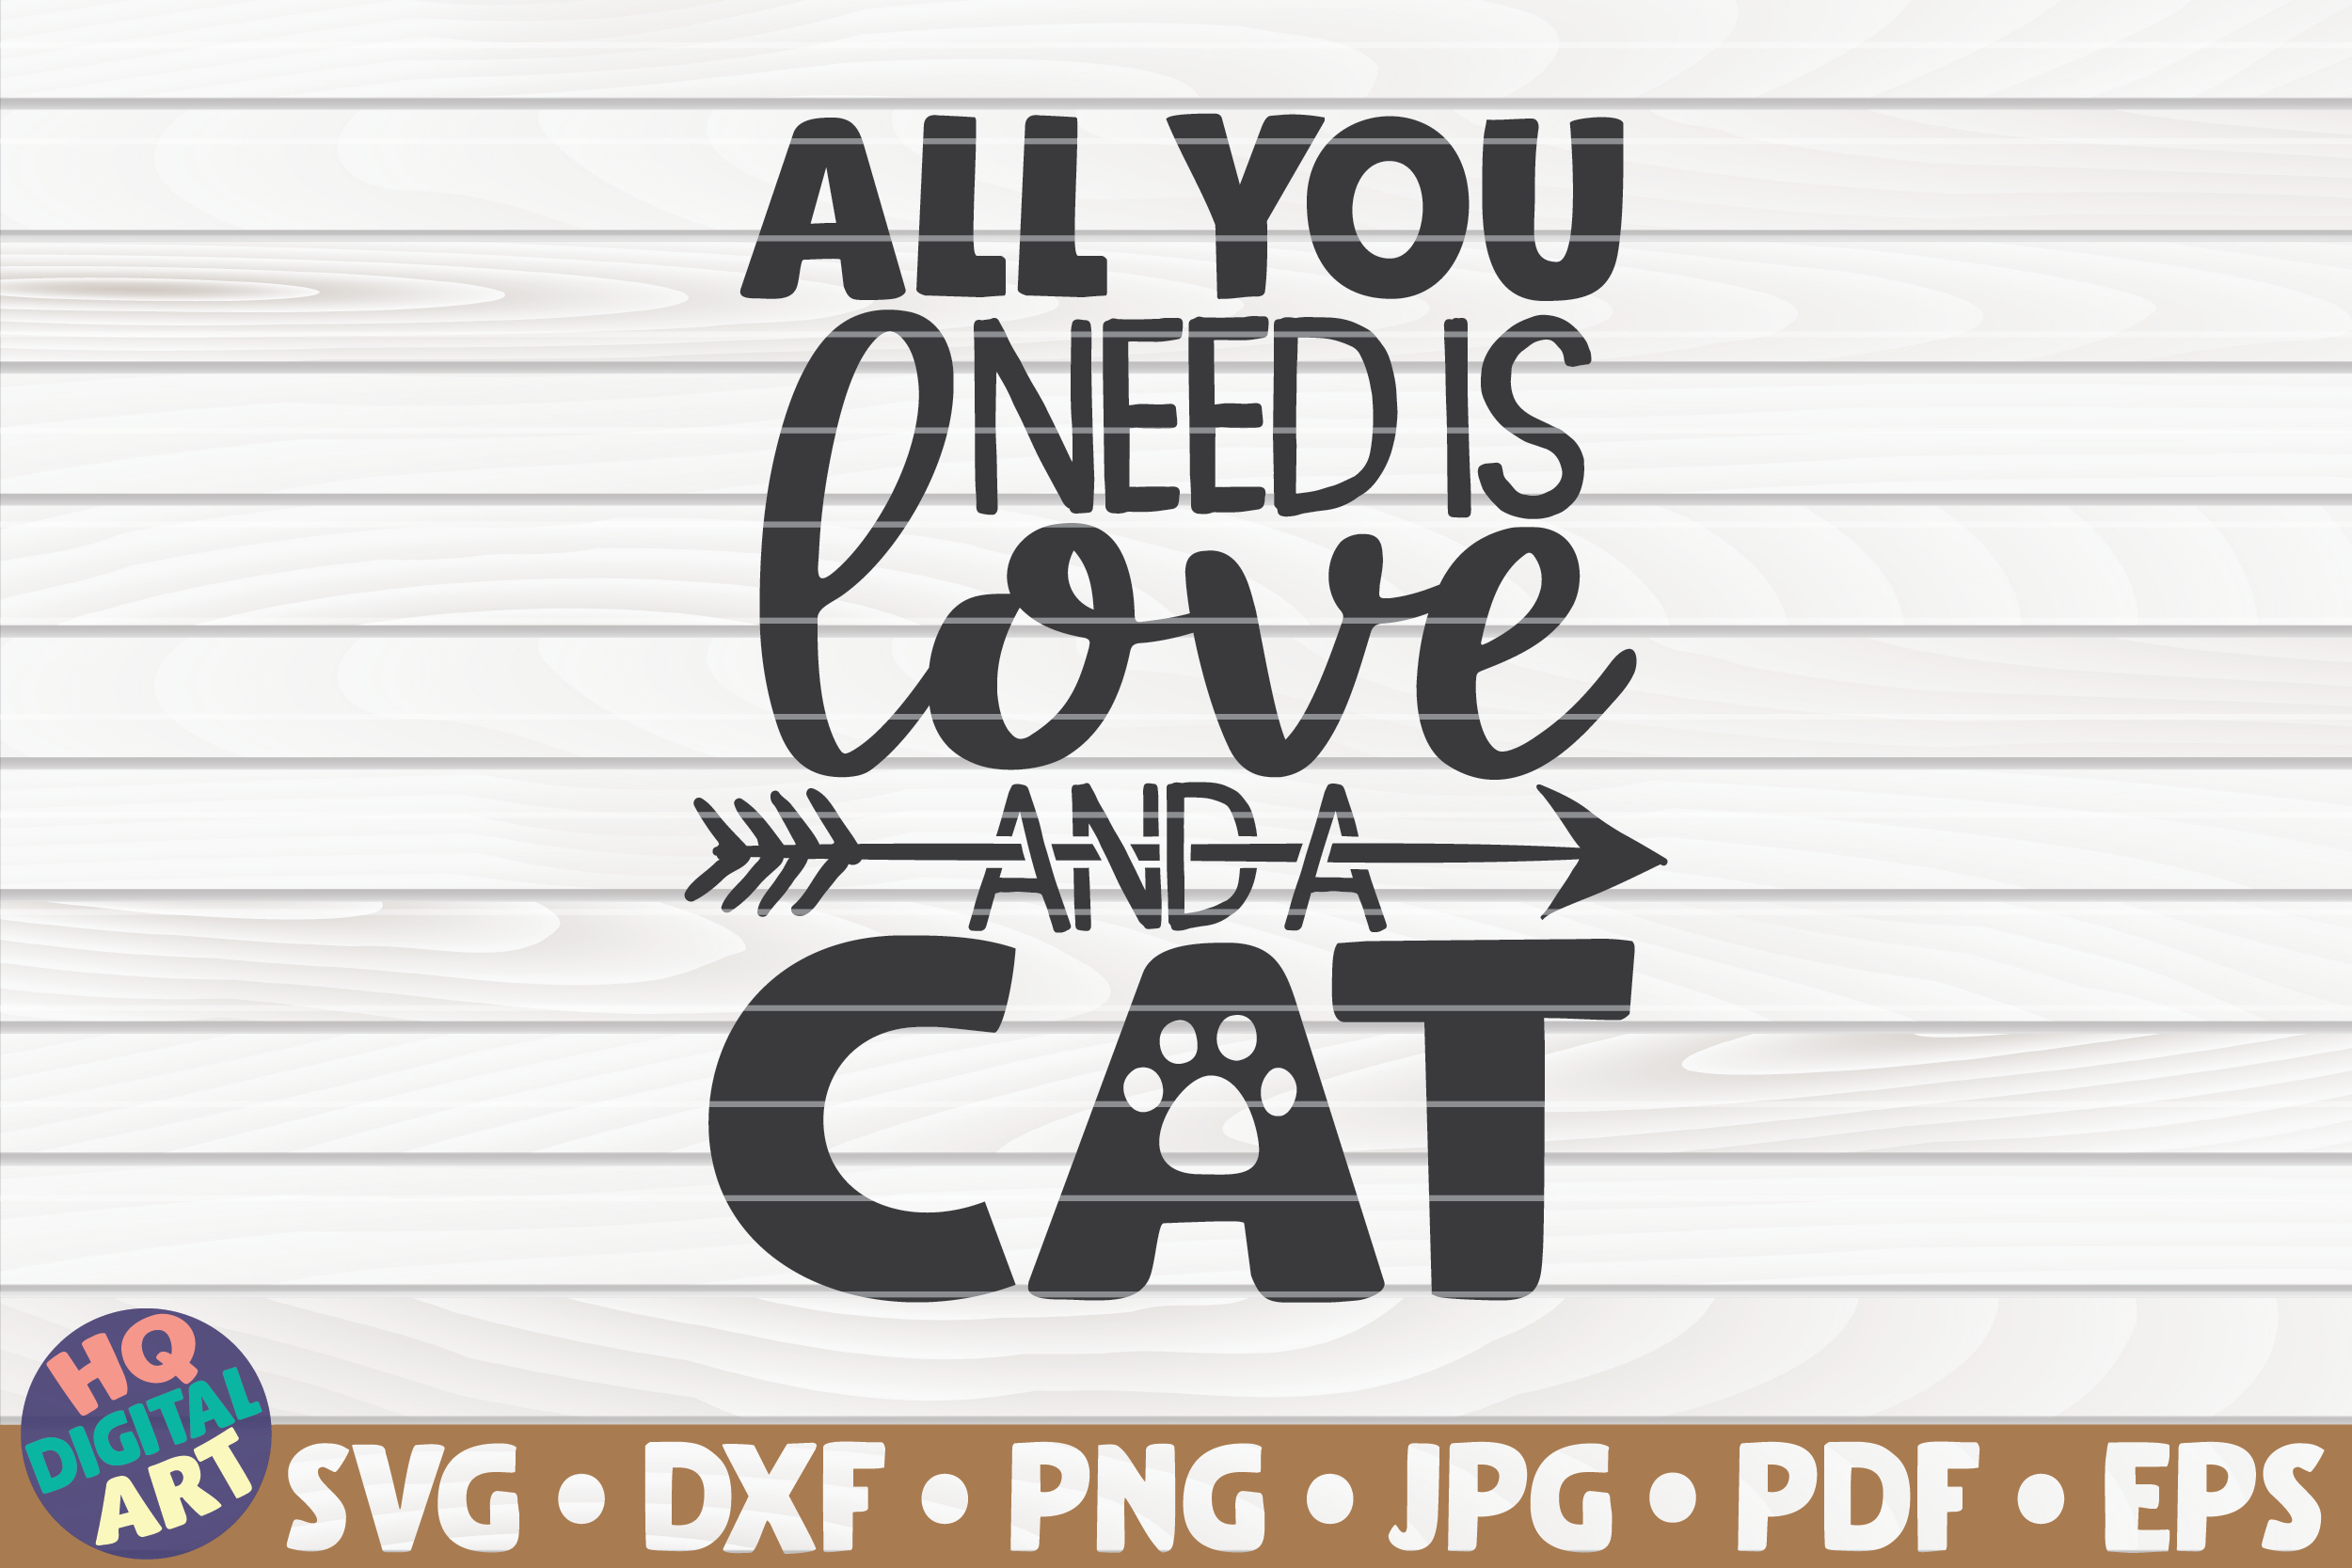 Download Free All You Need Is Love And A Cat Graphic By Mihaibadea95 for Cricut Explore, Silhouette and other cutting machines.